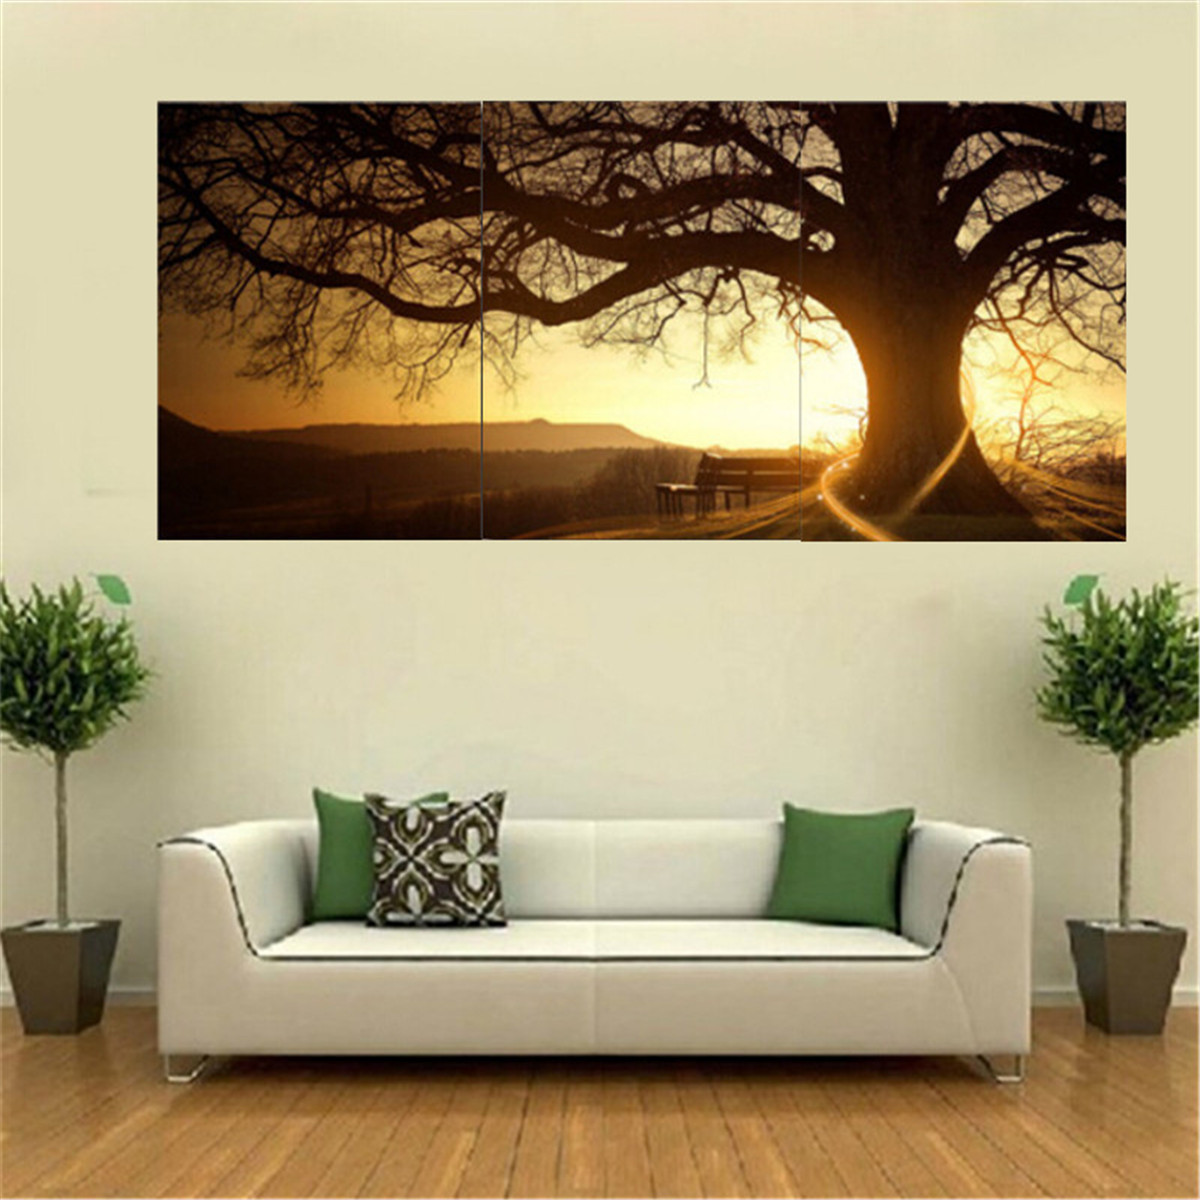 3pcs sunset combination painting printed on canvas for Home decor wall hanging